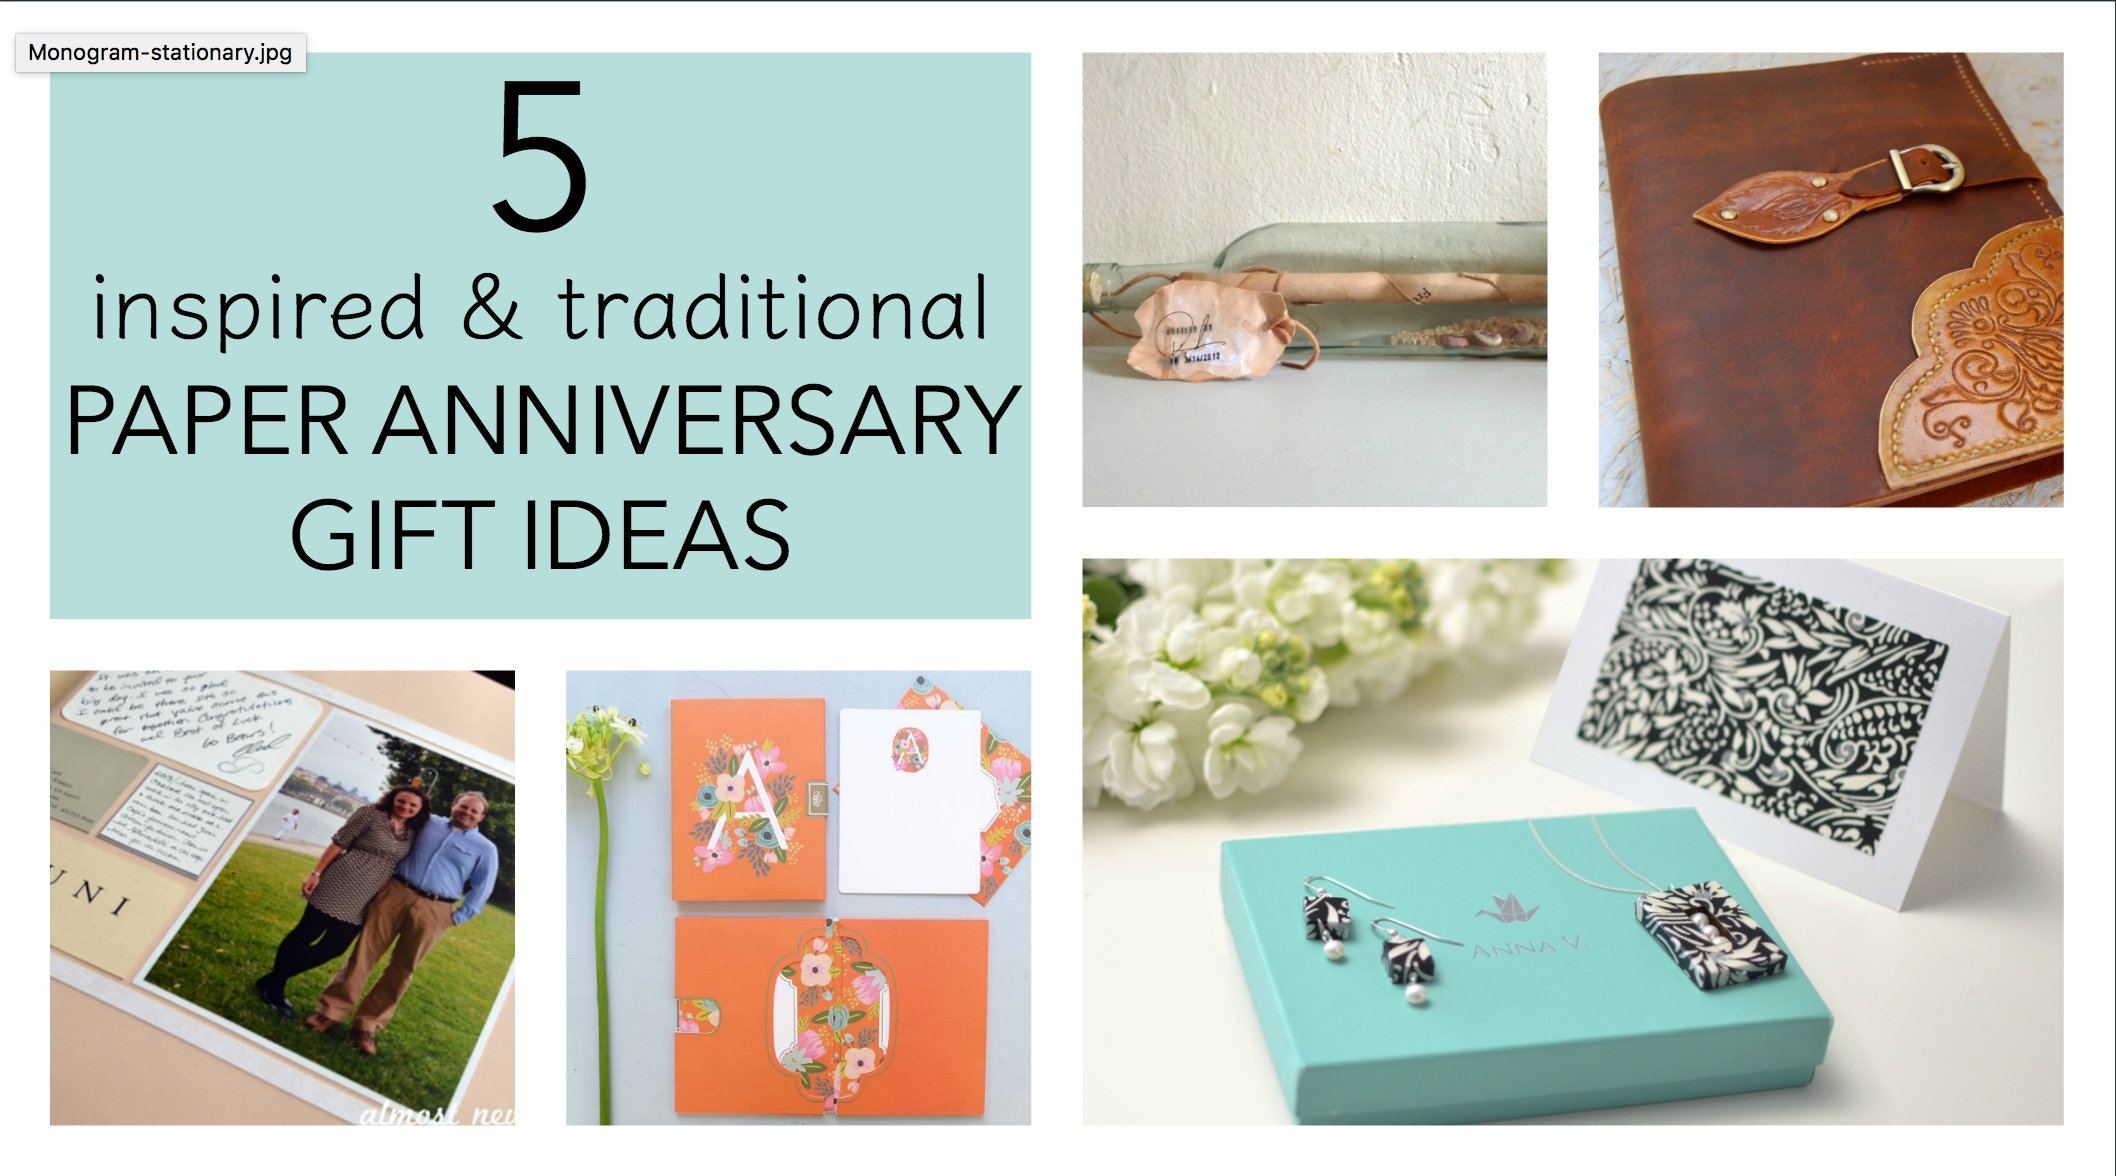 10 Nice Cheap Anniversary Ideas For Her 5 traditional paper anniversary gift ideas for her paper 13 2020